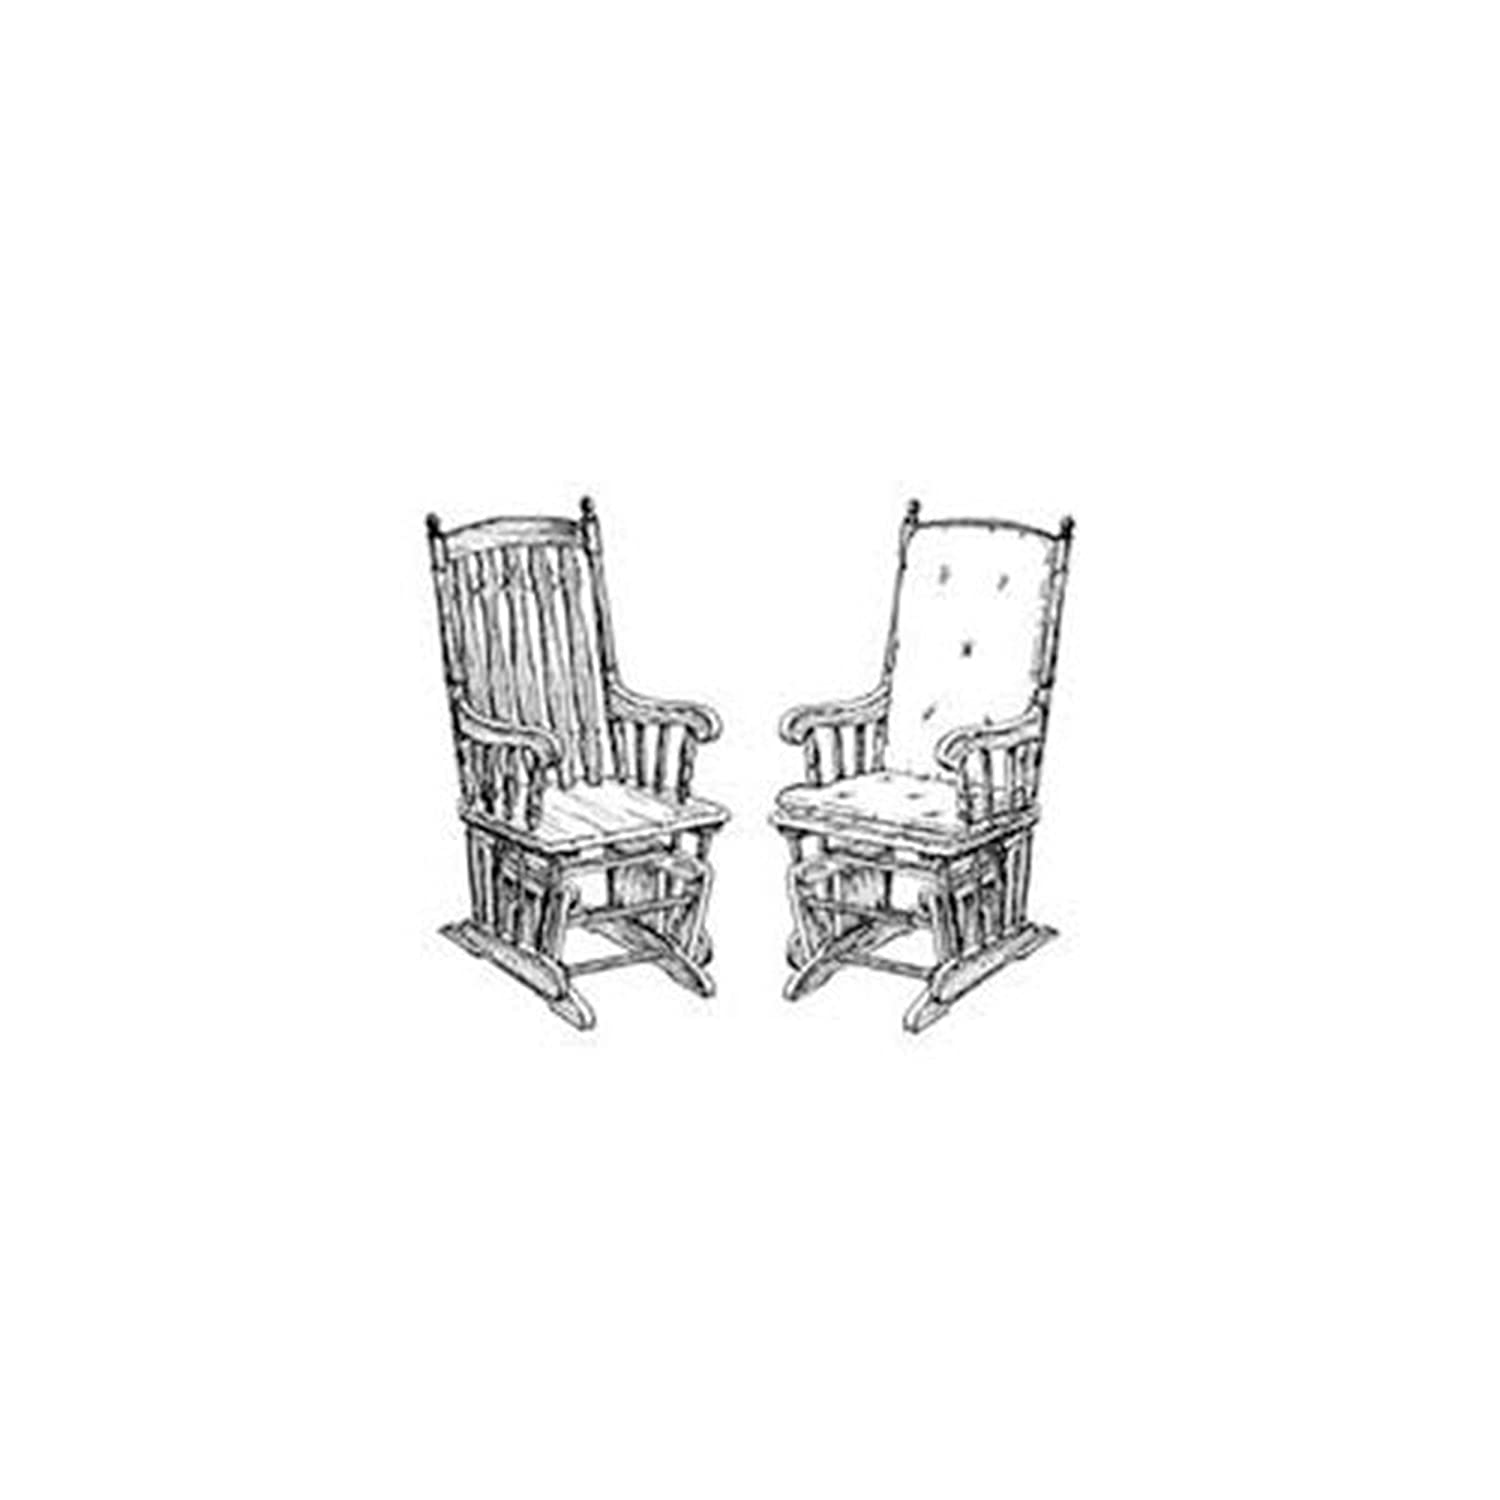 Rocking chair drawing Clip Art Woodworking Project Paper Plan To Build Glider Chair Indoor Furniture Woodworking Project Plans Amazoncom Amazoncom Woodworking Project Paper Plan To Build Glider Chair Indoor